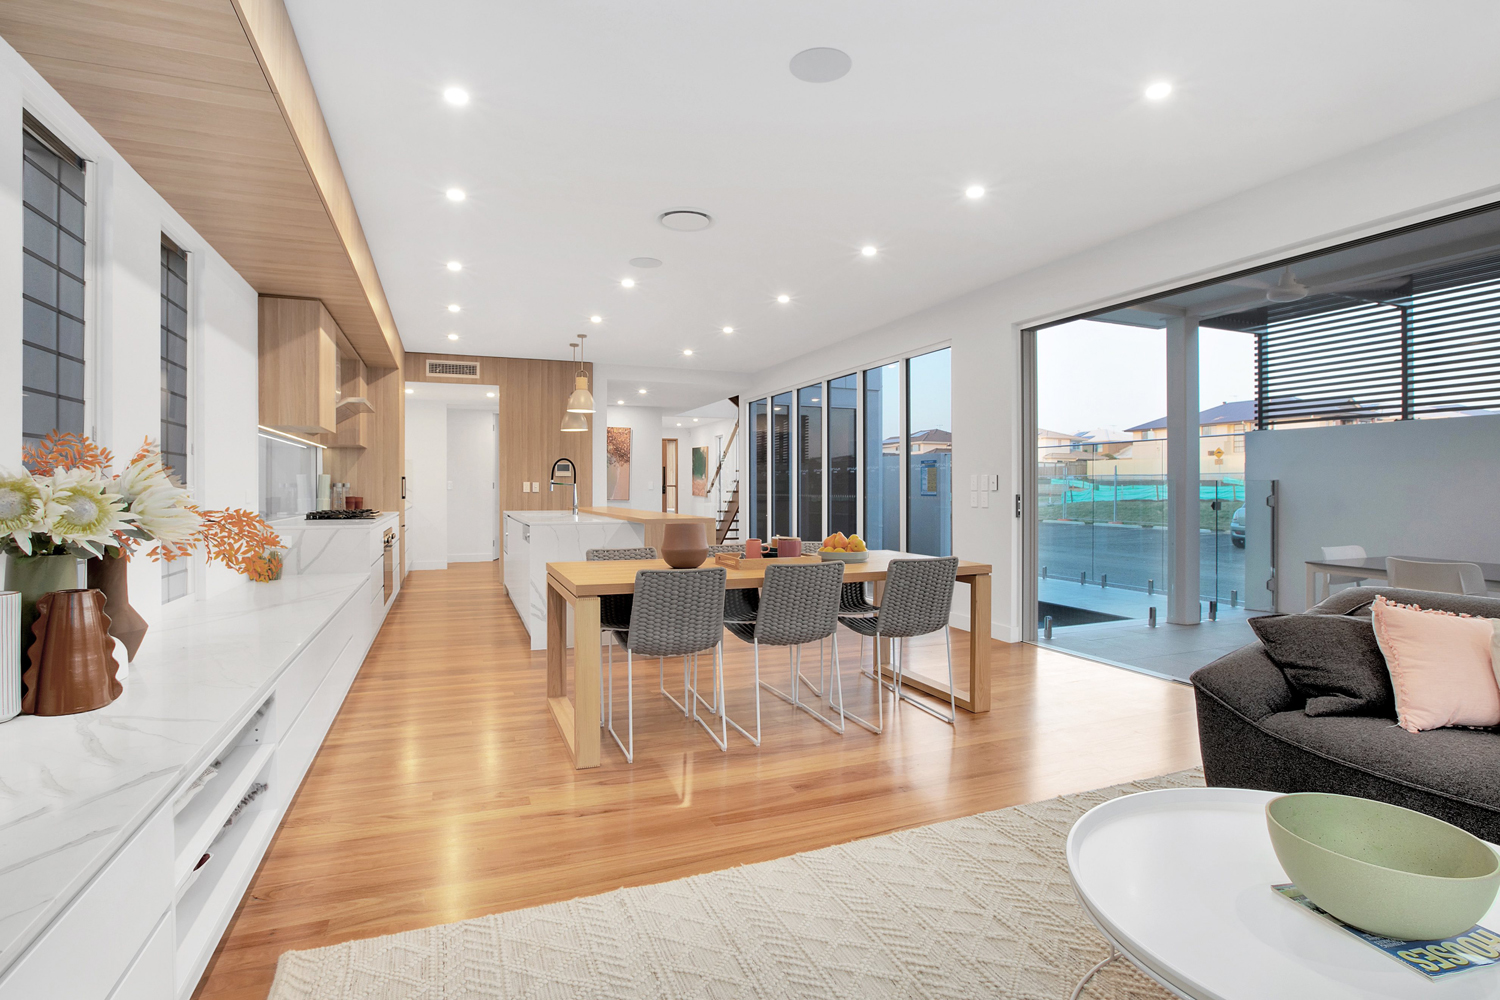 Luxury finishes a top priority for home buyers looking for a forever home